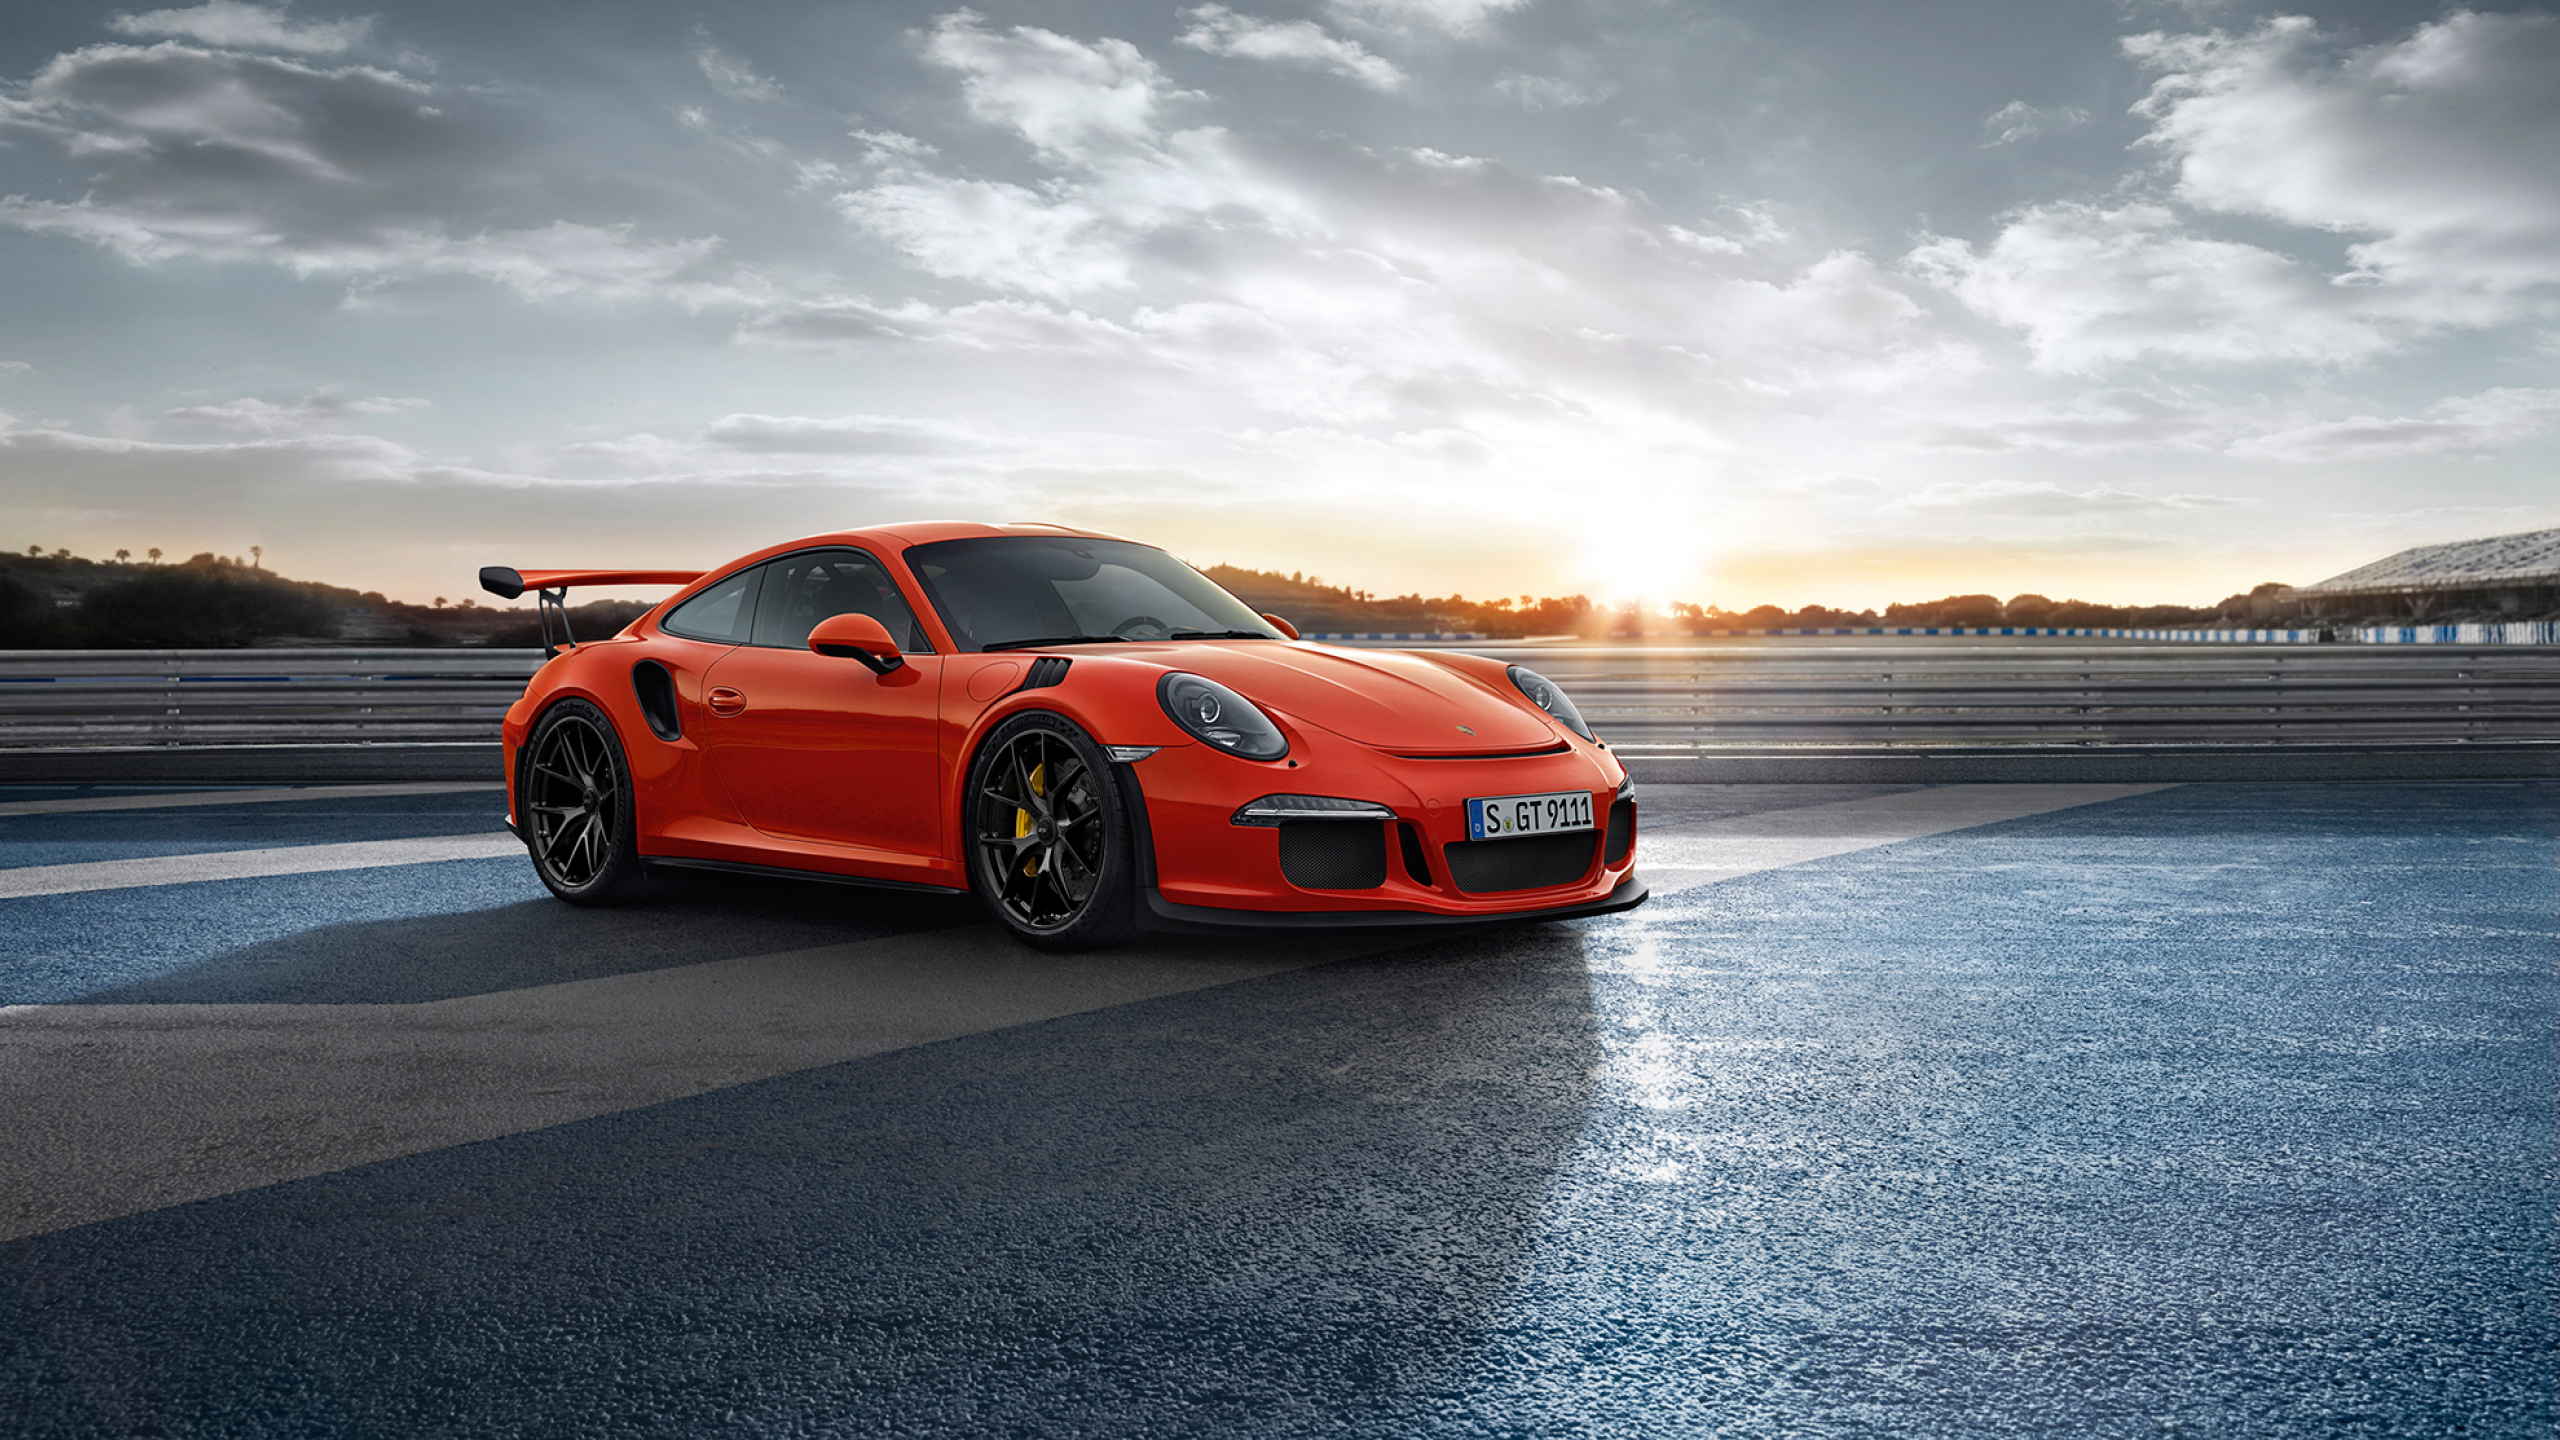 2560x1440 Porsche 911 Gt3rs 1440p Resolution Wallpaper Hd Cars 4k Wallpapers Images Photos And Background